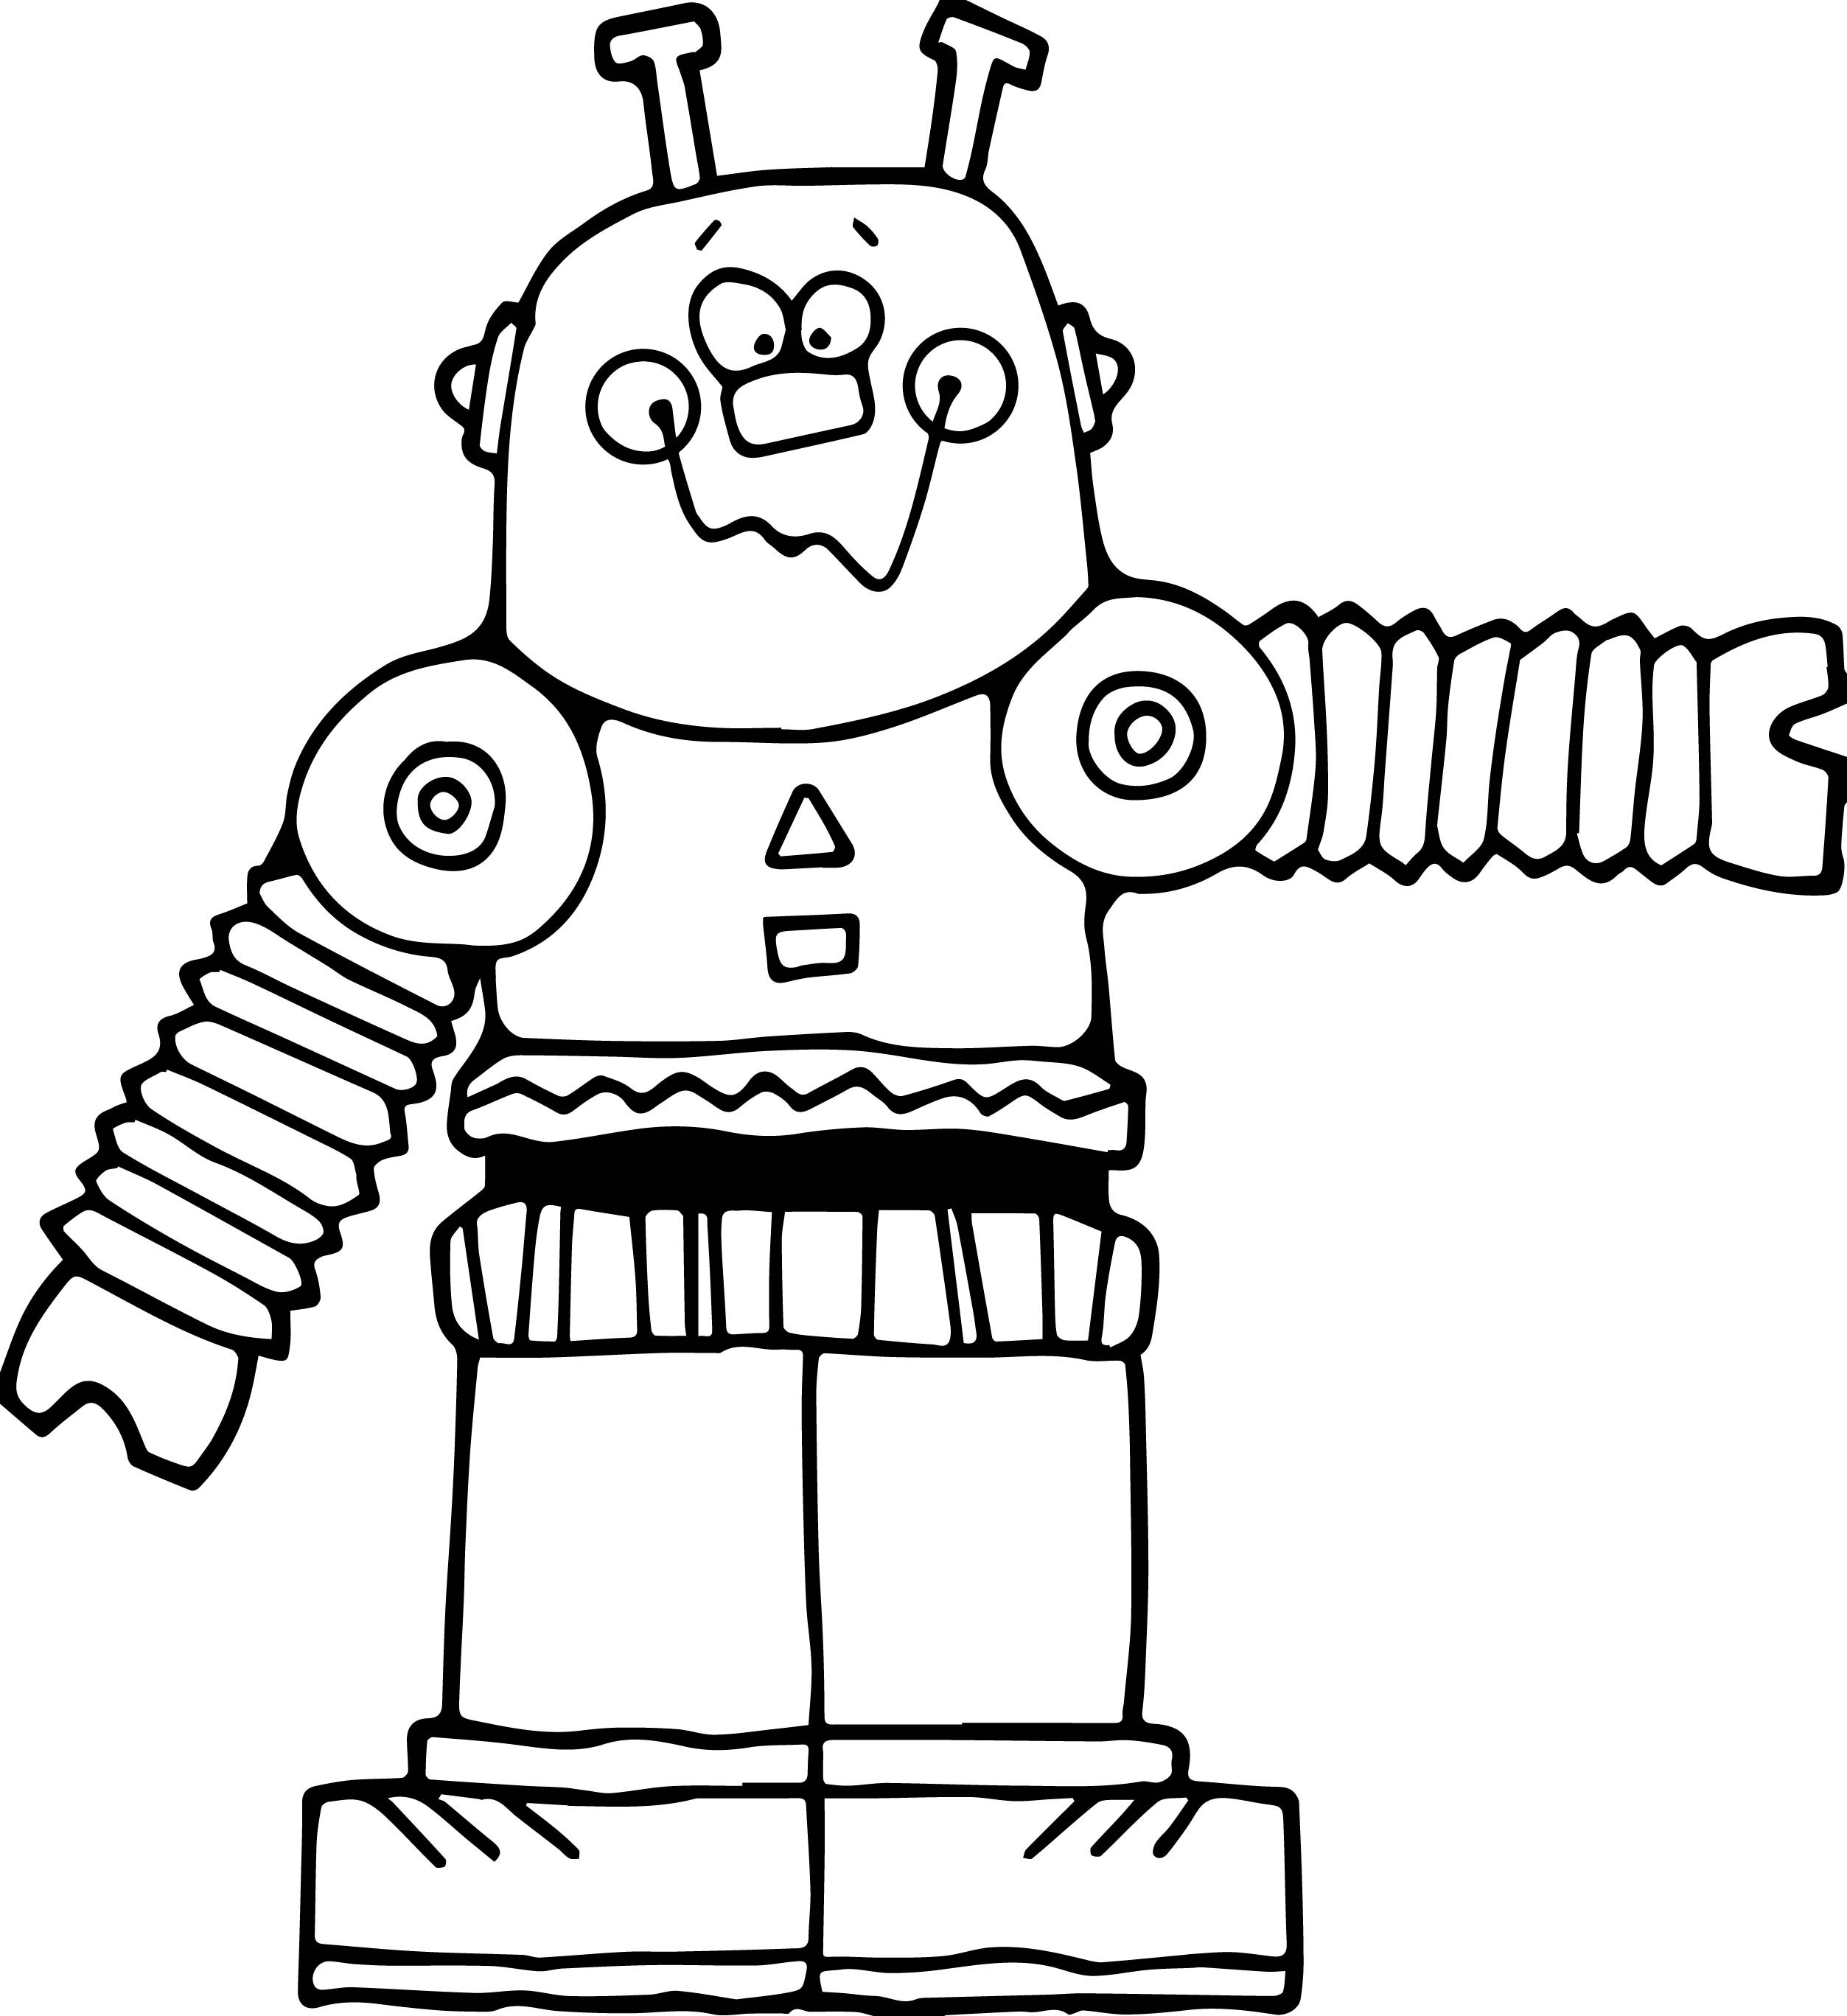 coloring robot drawing free printable robot coloring pages for kids cool2bkids robot drawing coloring